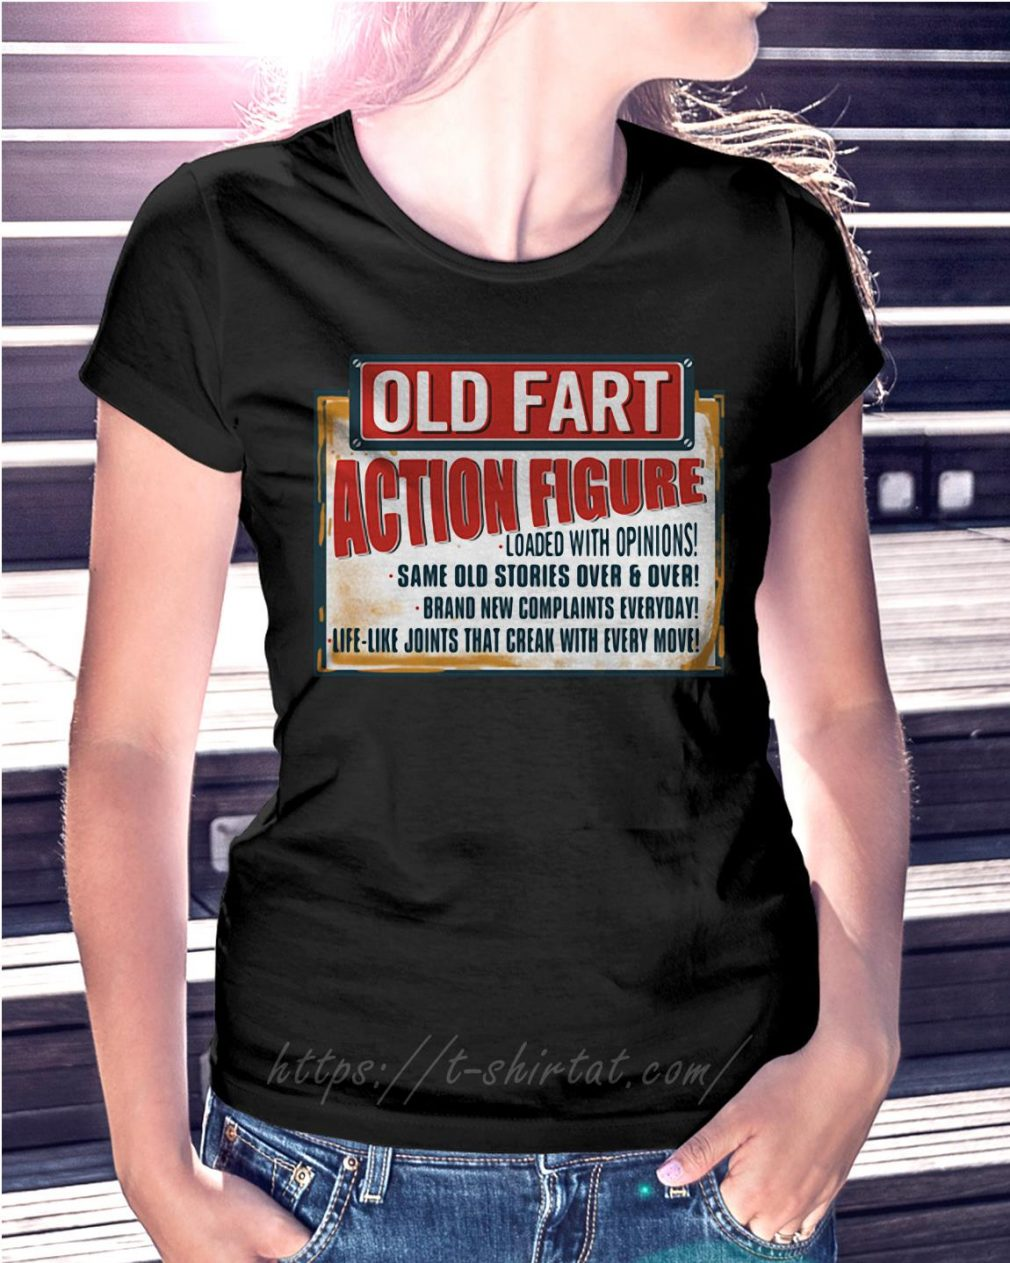 Old fart action figure loaded with opinions Ladies Tee